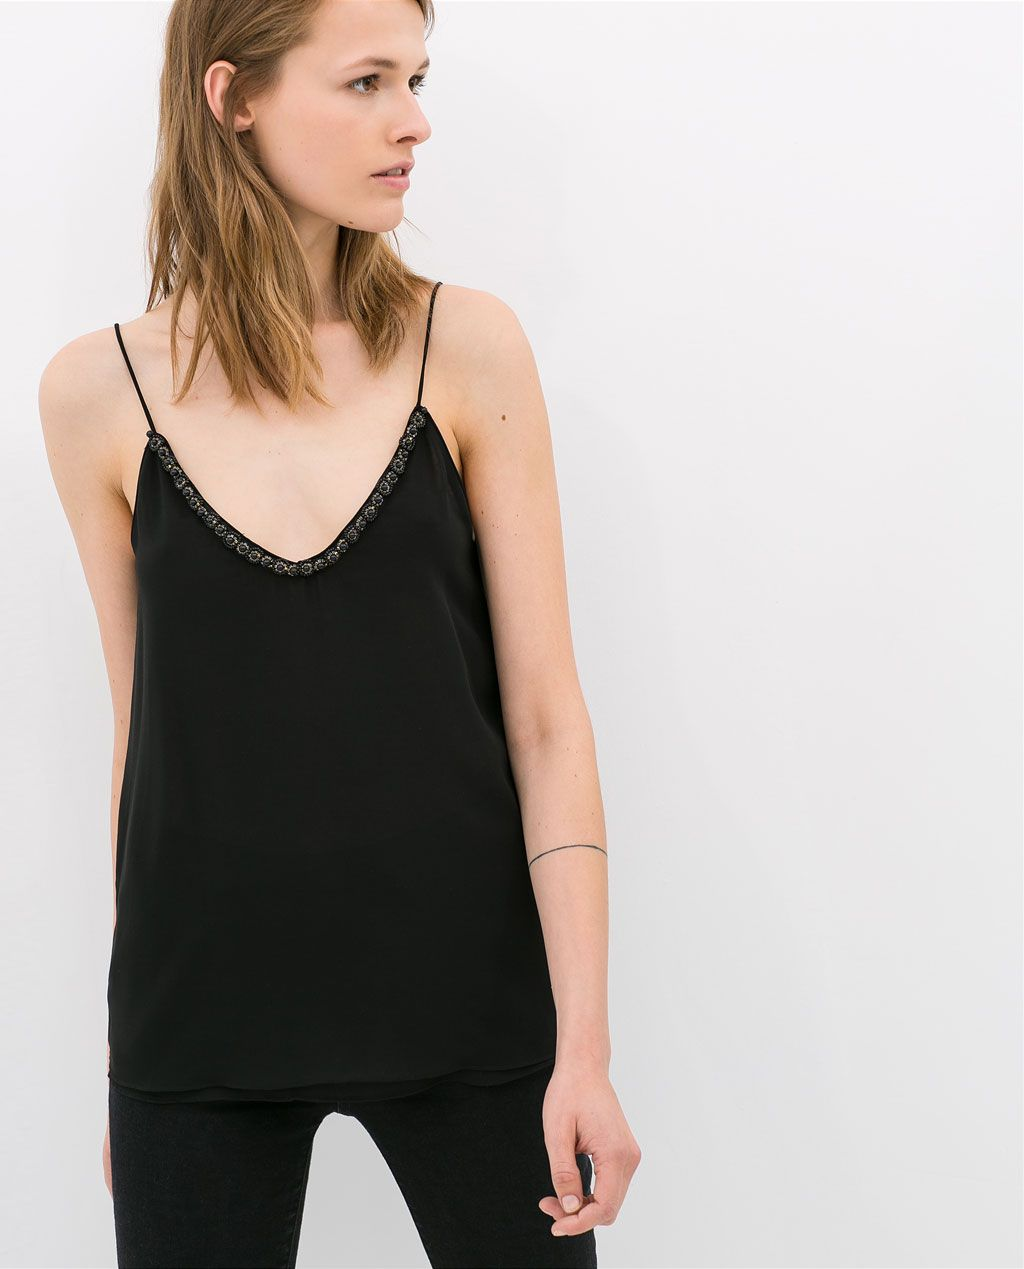 ZARA - NEW THIS WEEK - LINGERIE-STYLE TOP | Fashion | Pinterest ...